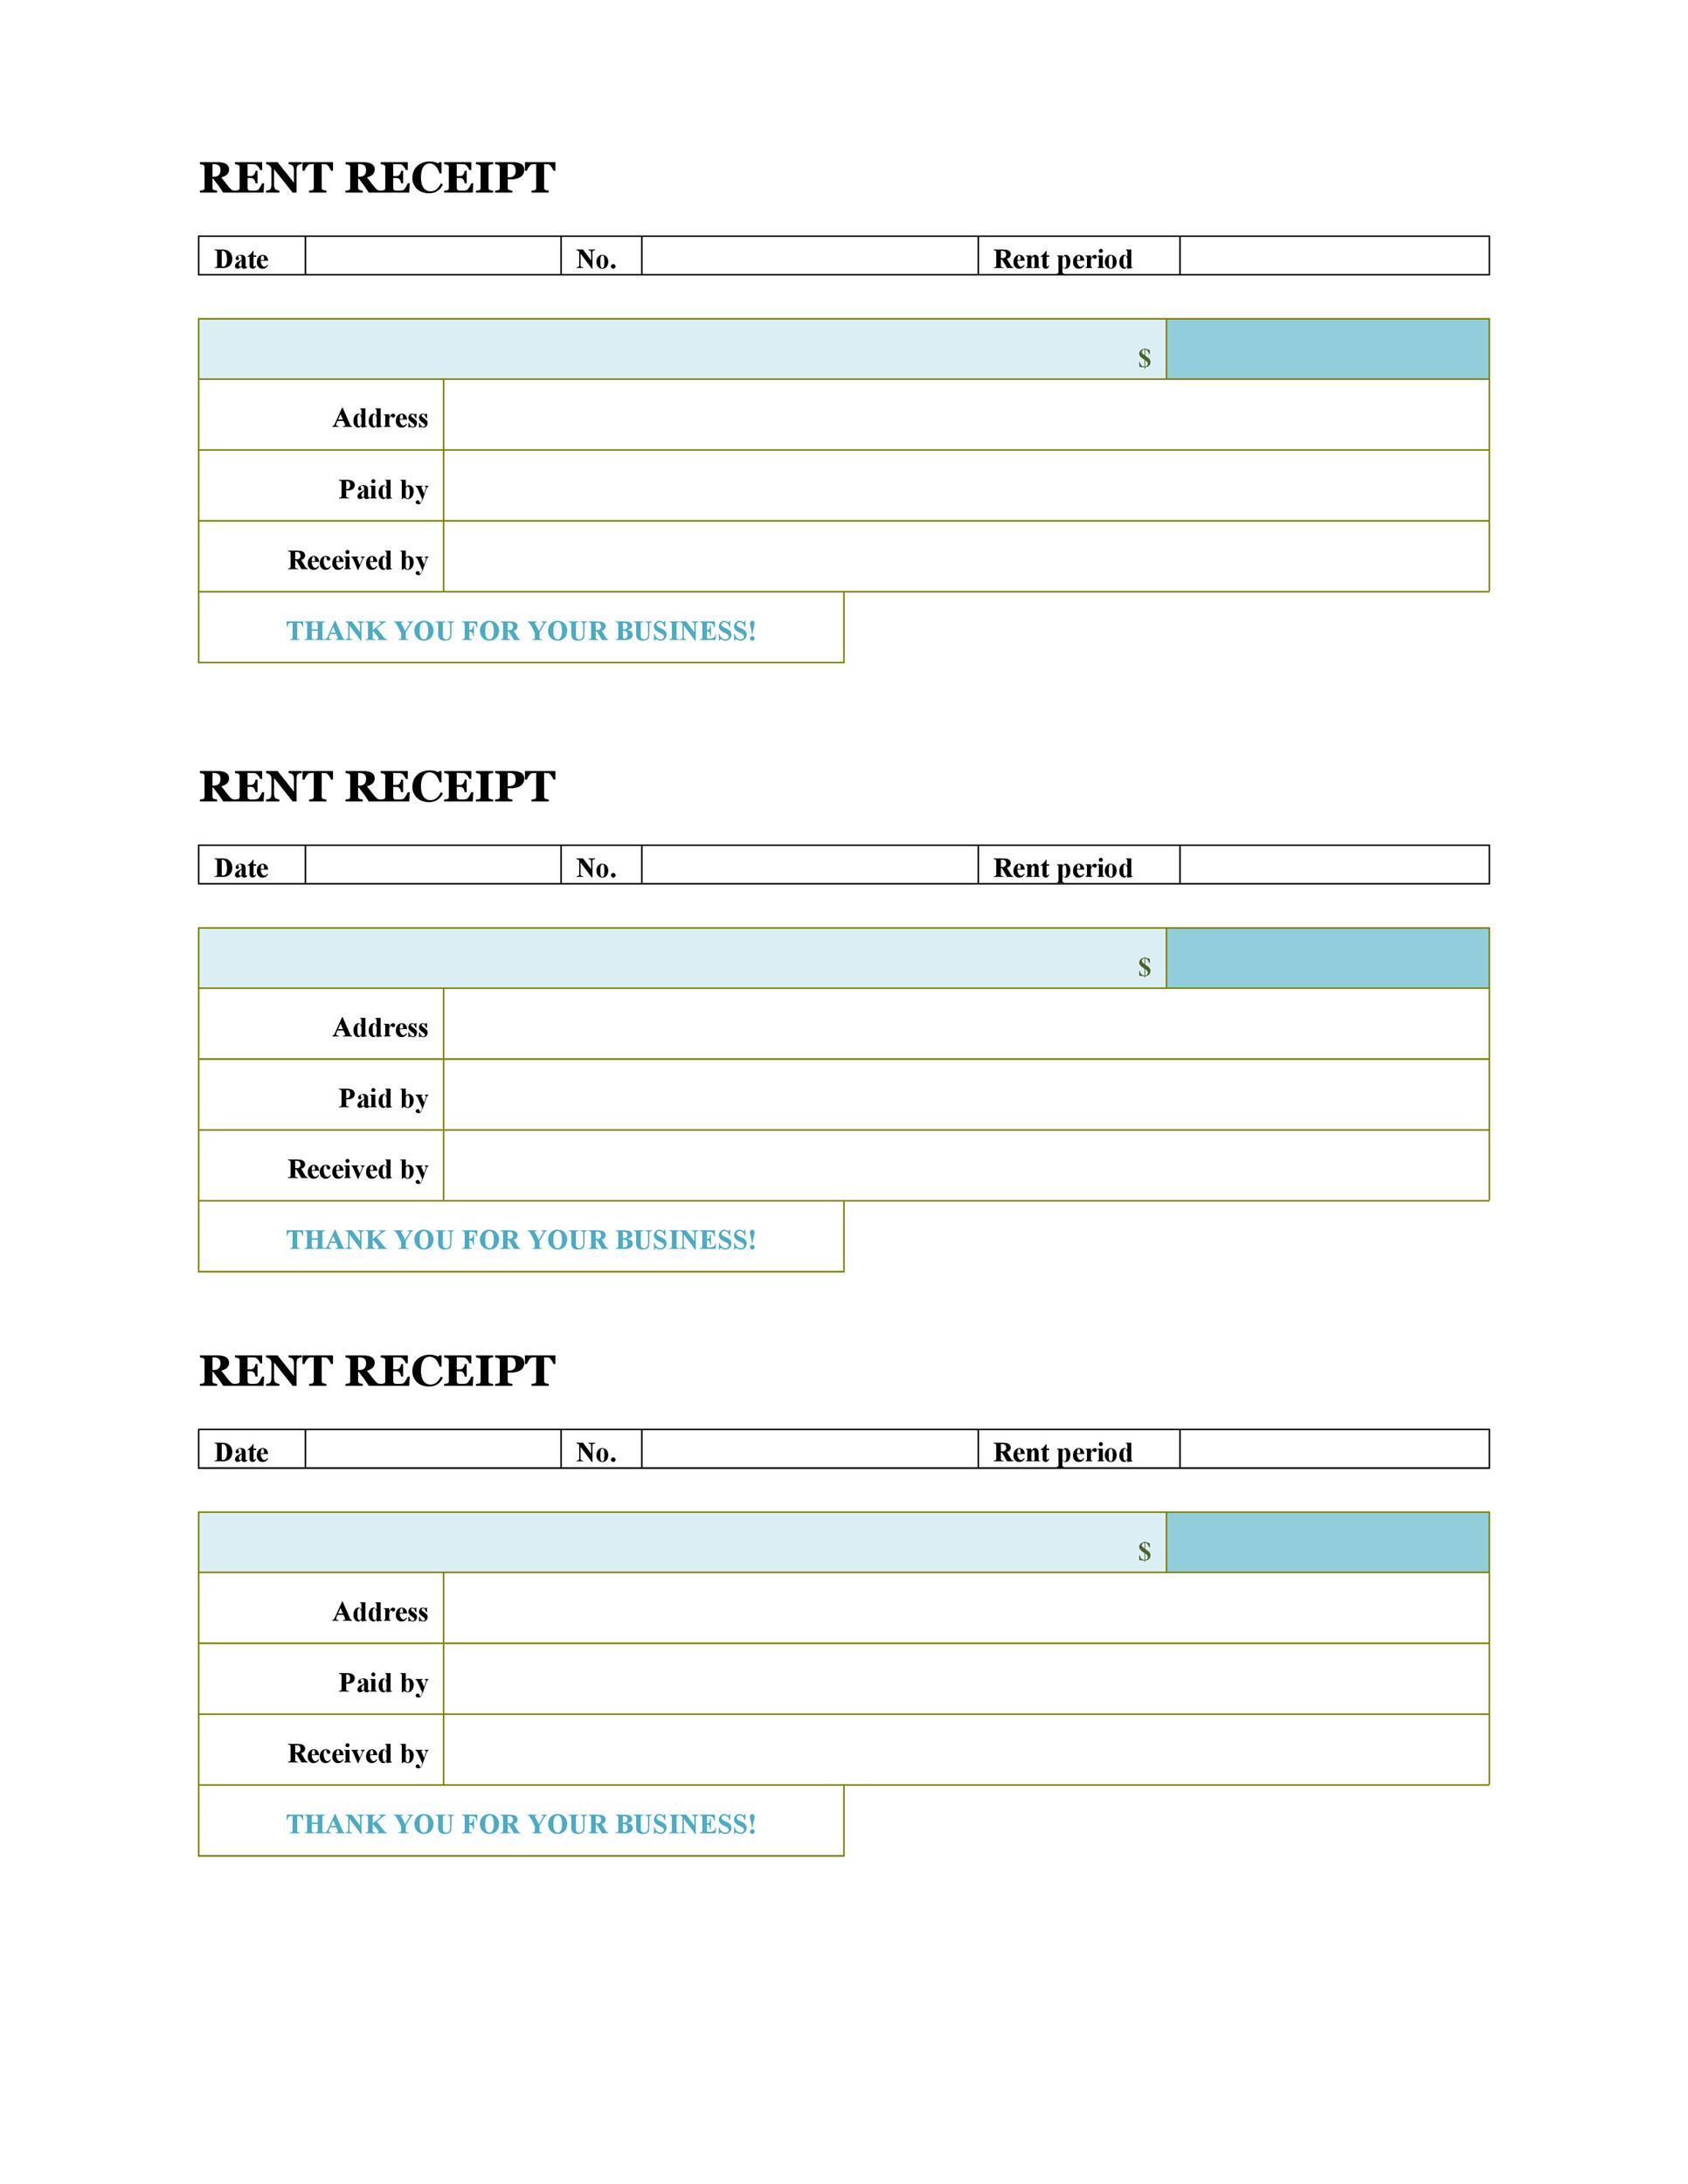 50 Free Receipt Templates Cash Sales Donation Taxi – Received Receipt Format